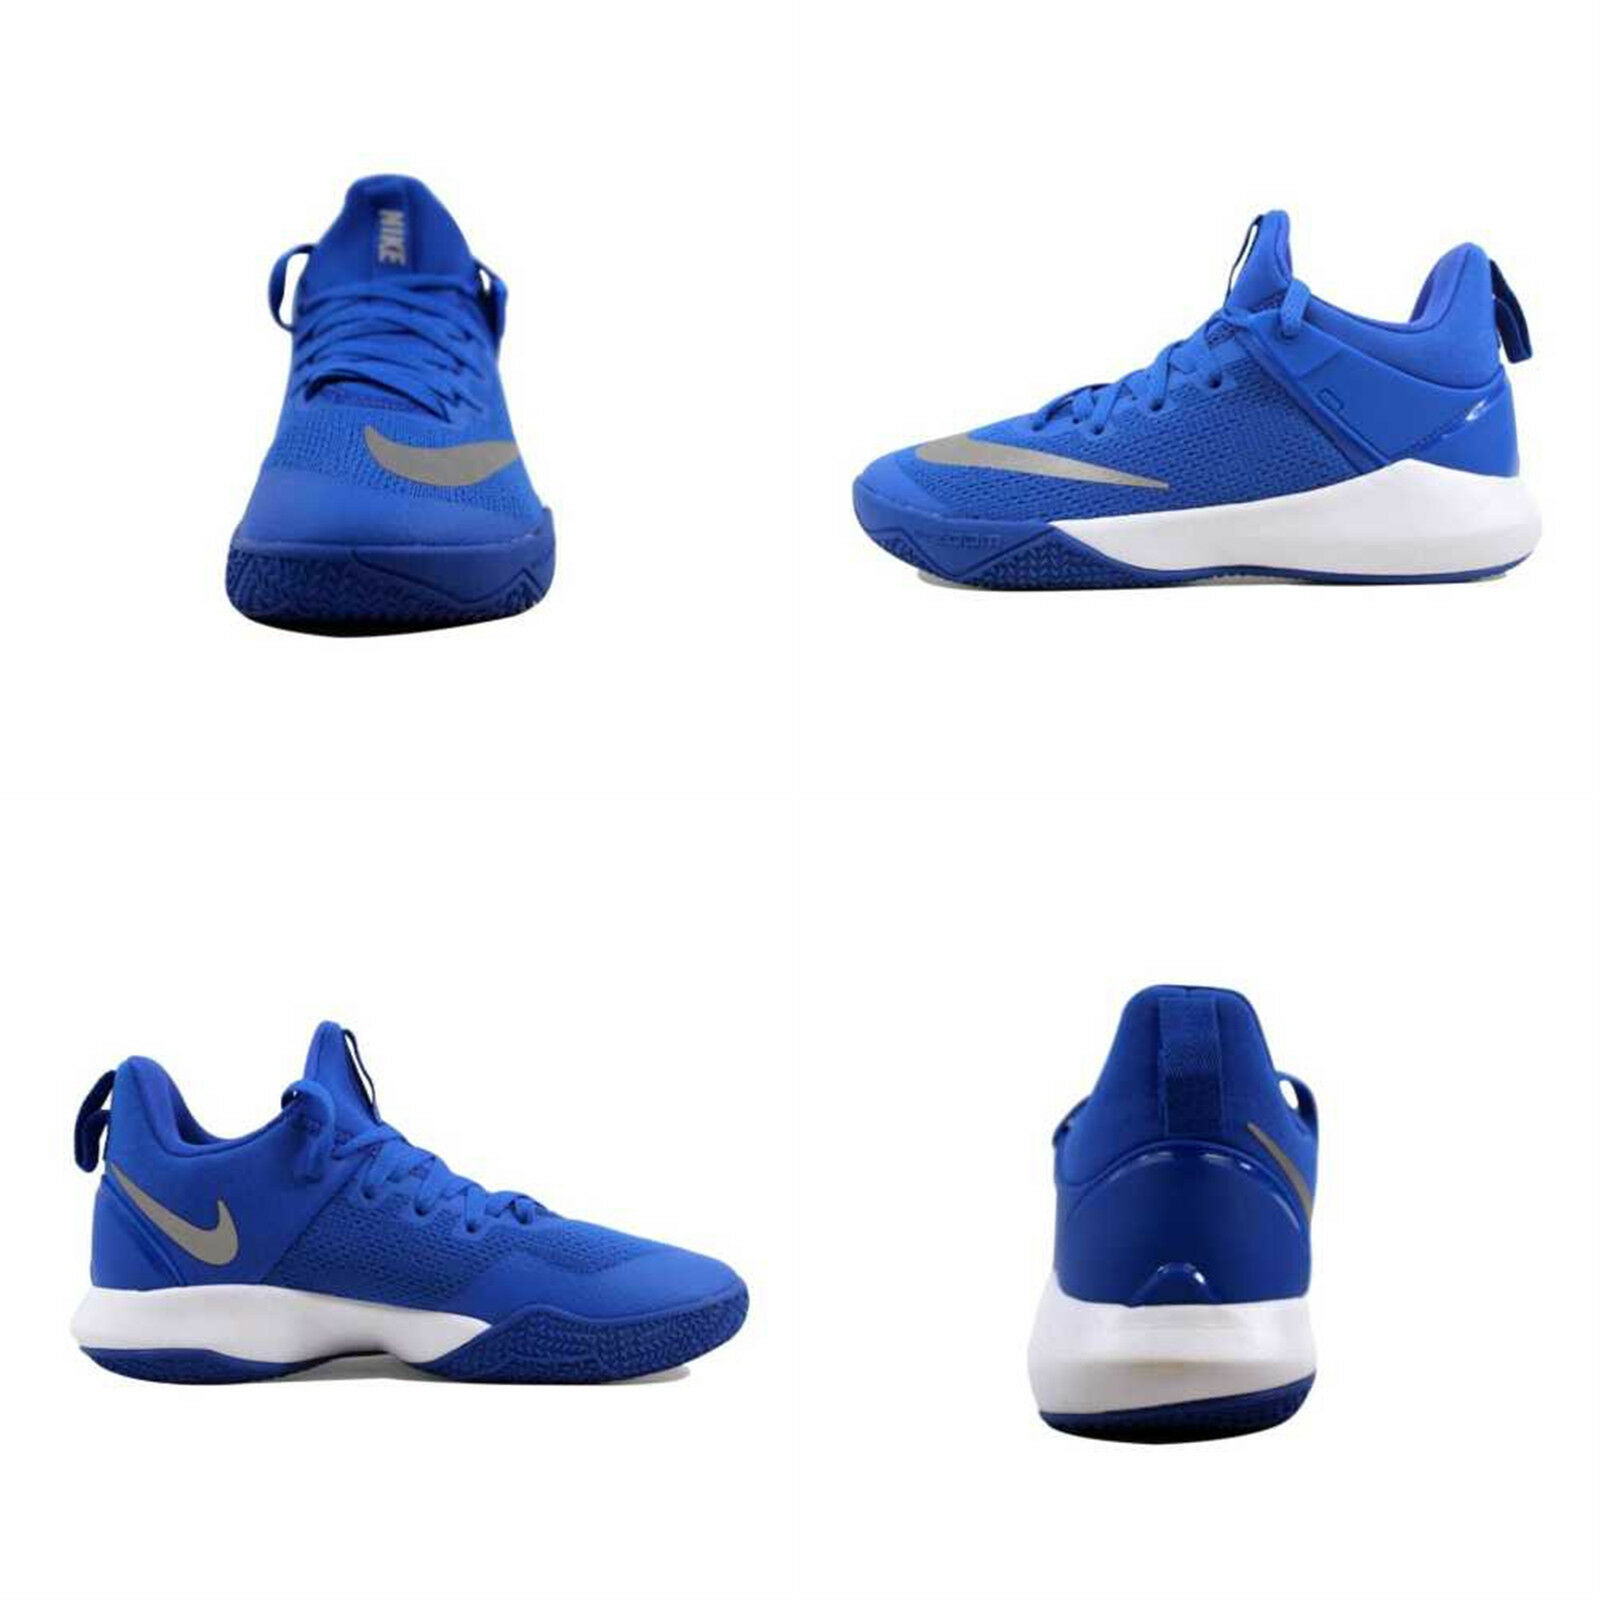 NIKE ZOOM SHIFT TB 897811 - 400  Men's Basketball shoes,NEW WITH BOX.